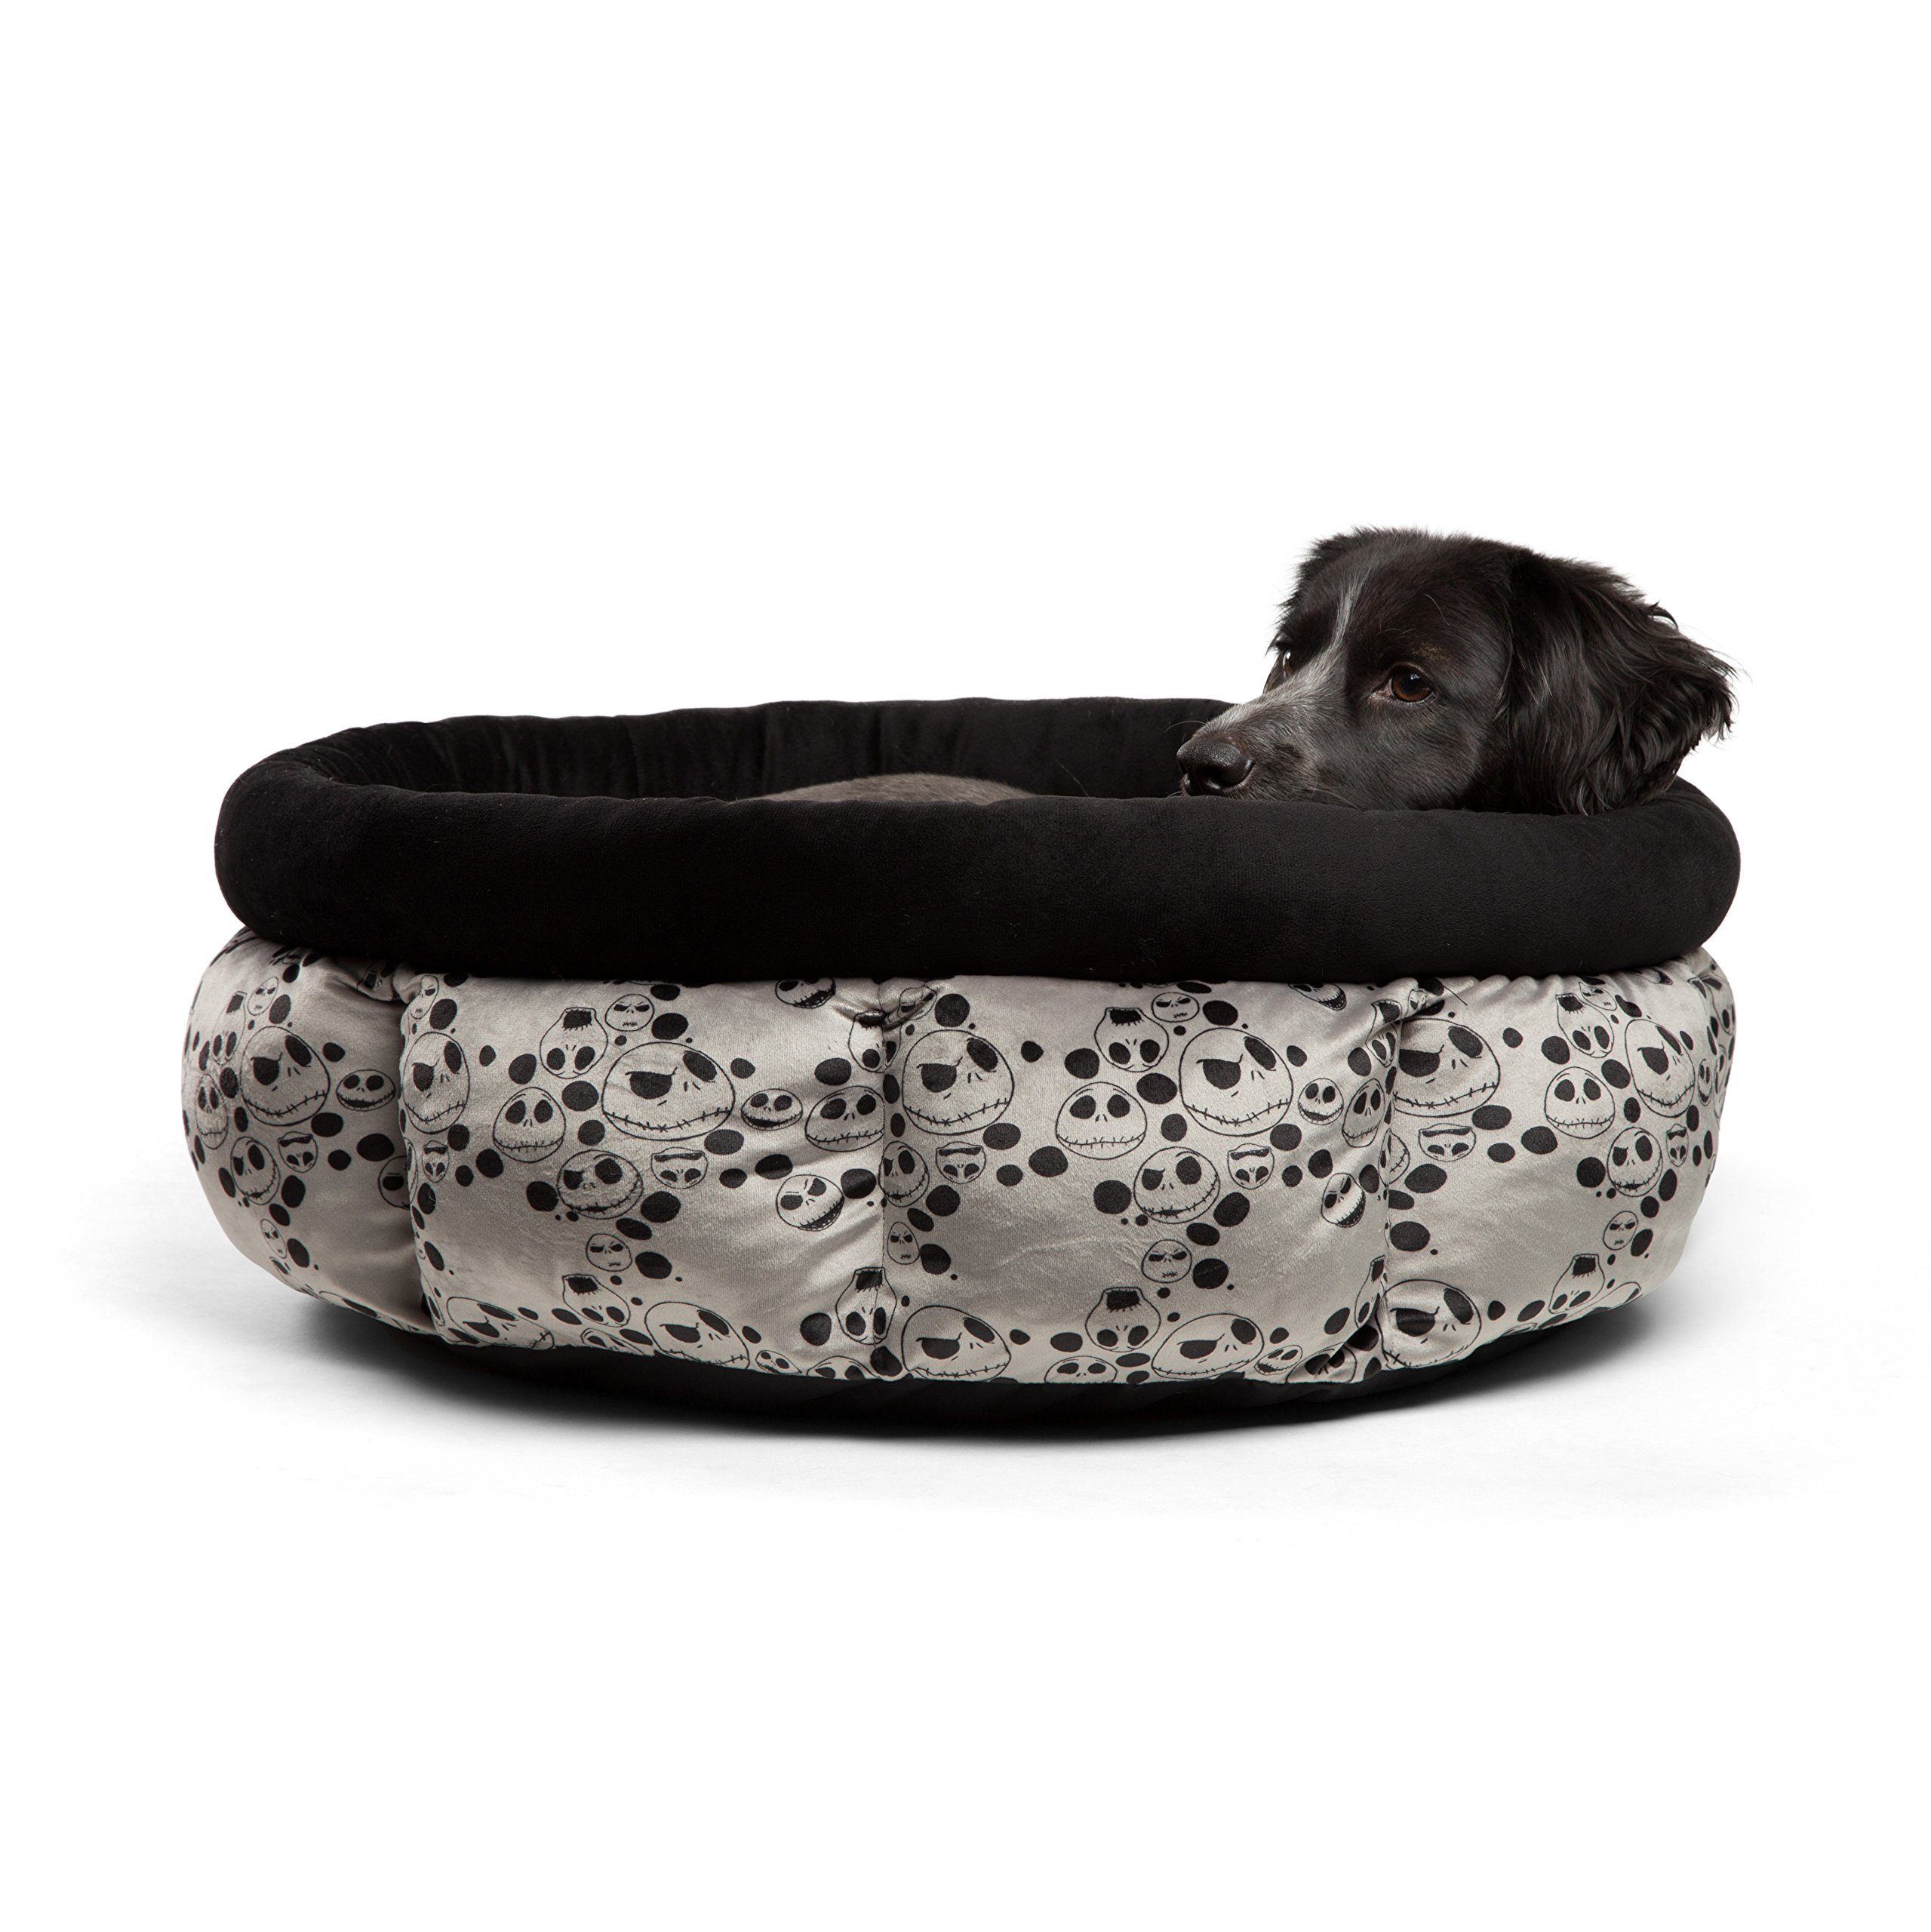 Disney Nightmare Before Christmas Jack Skellington Jumbo Cuddle Cup Dog Bed / Cat Bed, Machine Washable, High Walls for Deep Sleep, Dirt/ Water Resistant Bottom, For Pets upto 20lbs by Disney